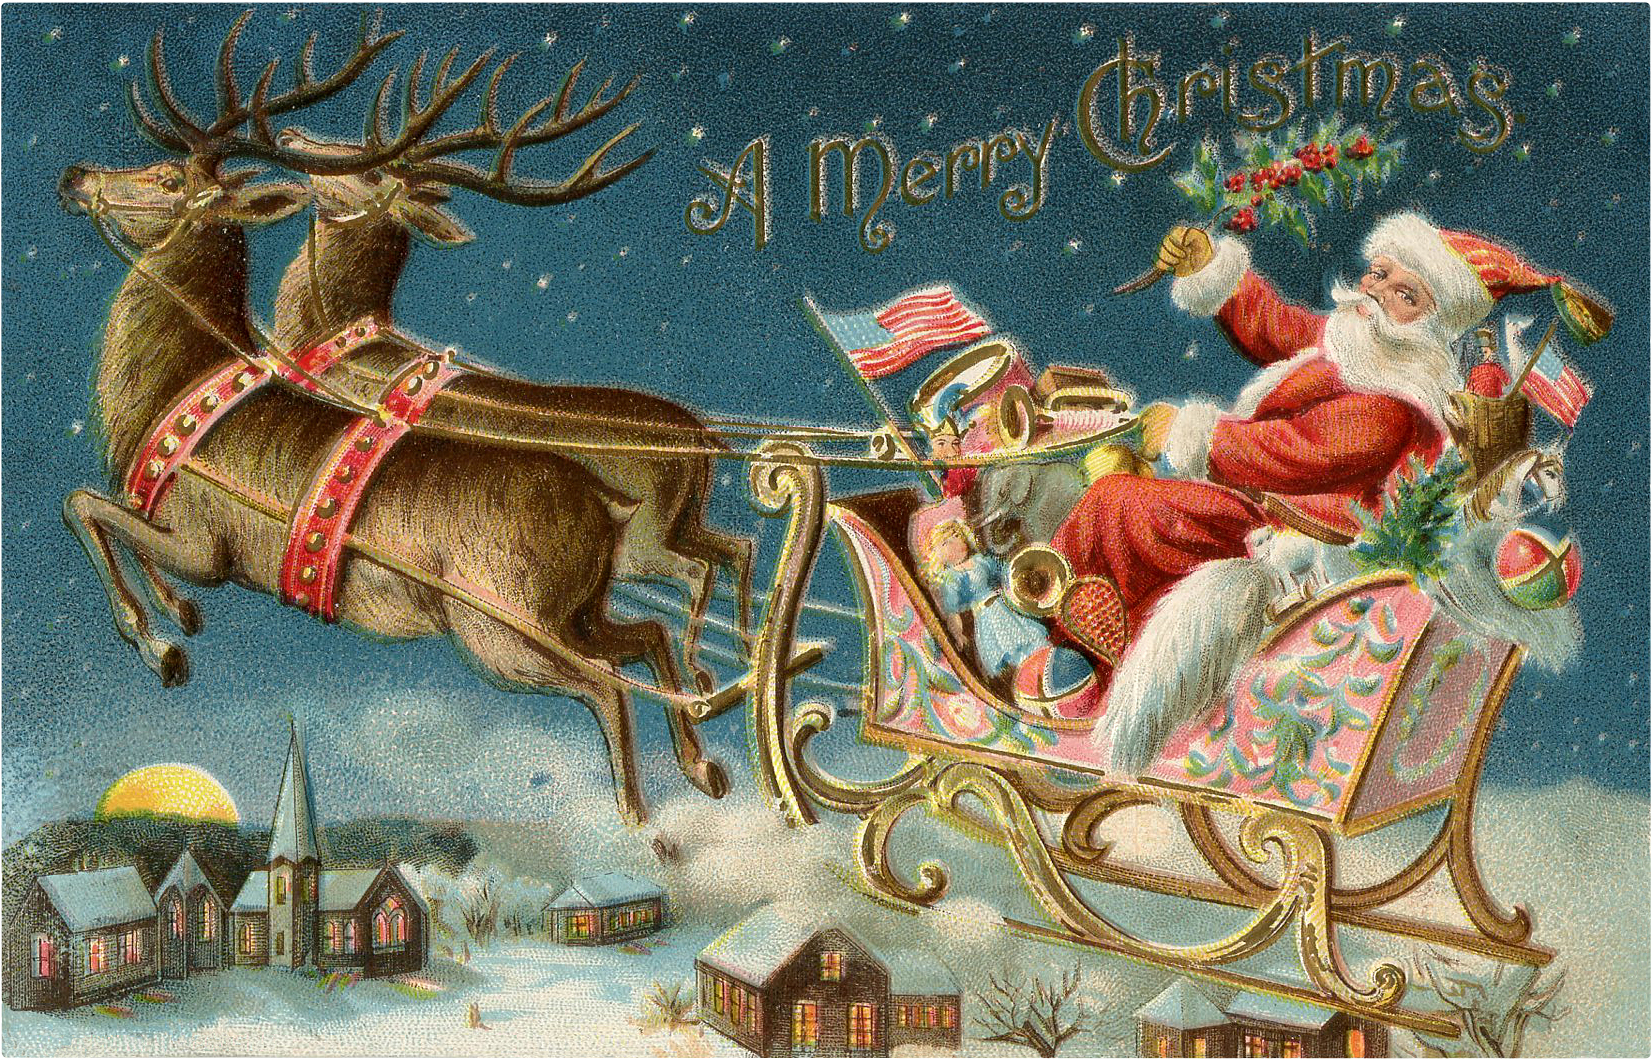 Vintage santa sleigh clipart banner free library 10 Santa Sleigh Images and More! - The Graphics Fairy banner free library